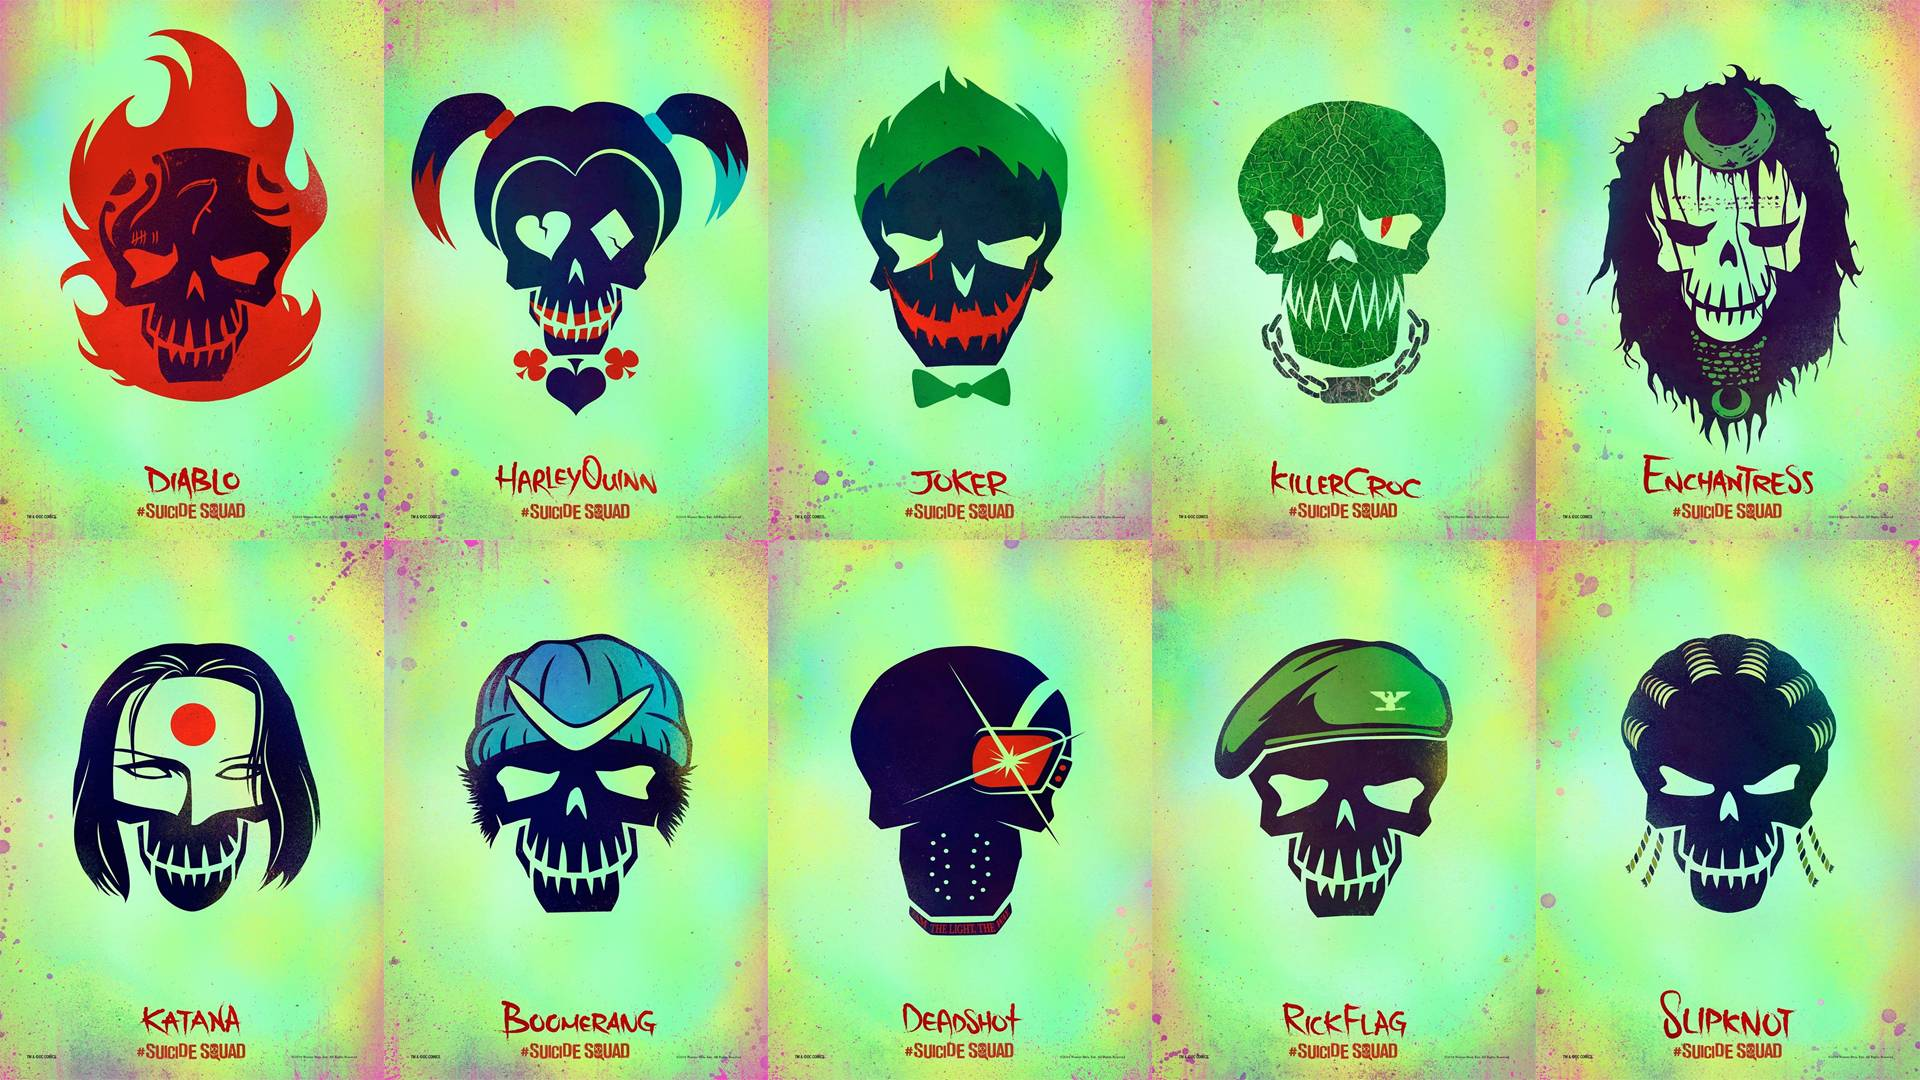 Wallpapers I made out of the new Suicide Squad posters. : DCcomics